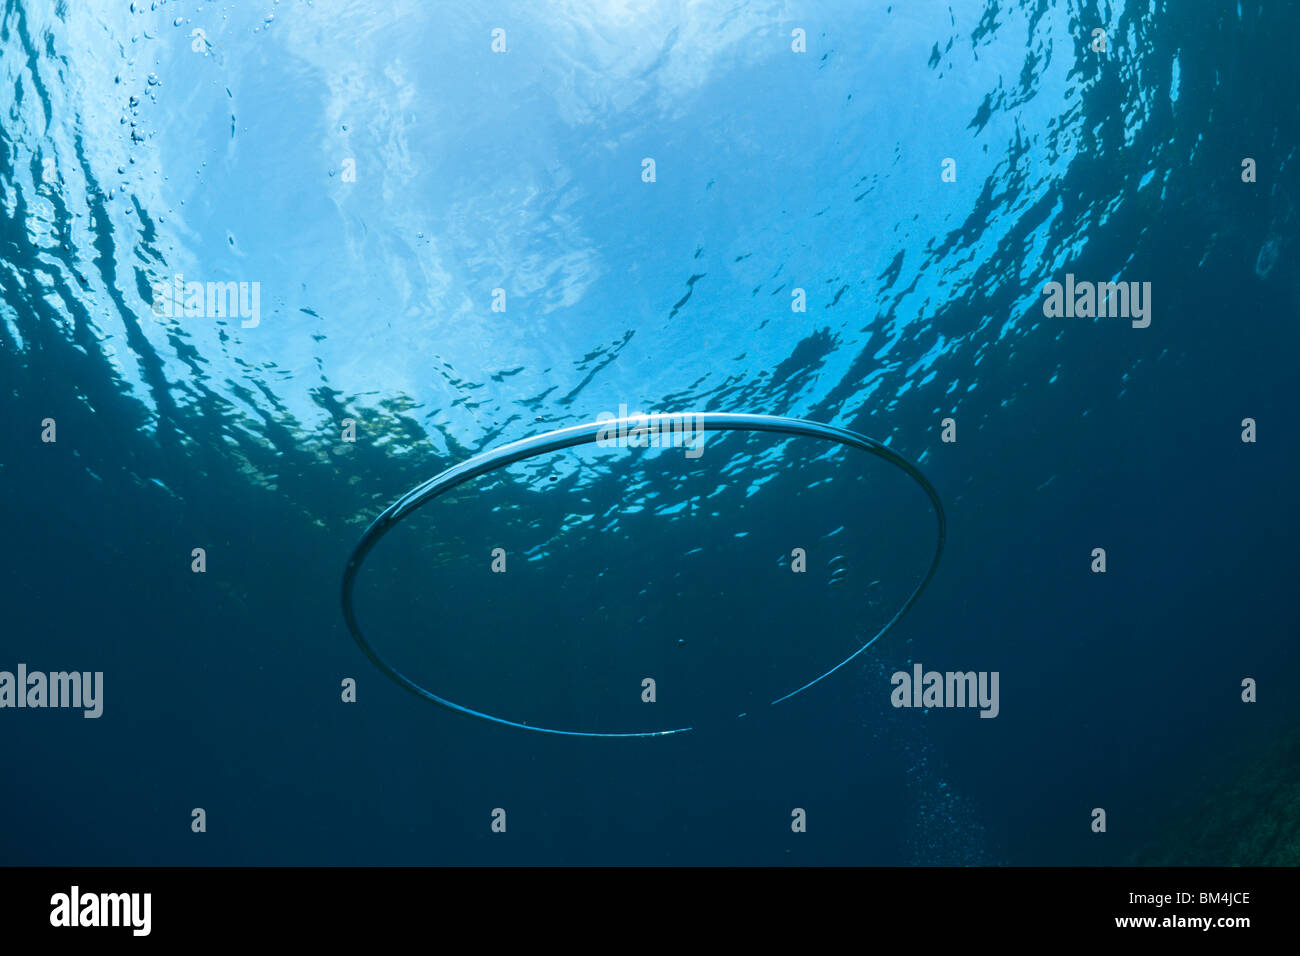 Bubble Ring made by Scuba Diver underwater, Raja Ampat, West Papua, Indonesia Stock Photo